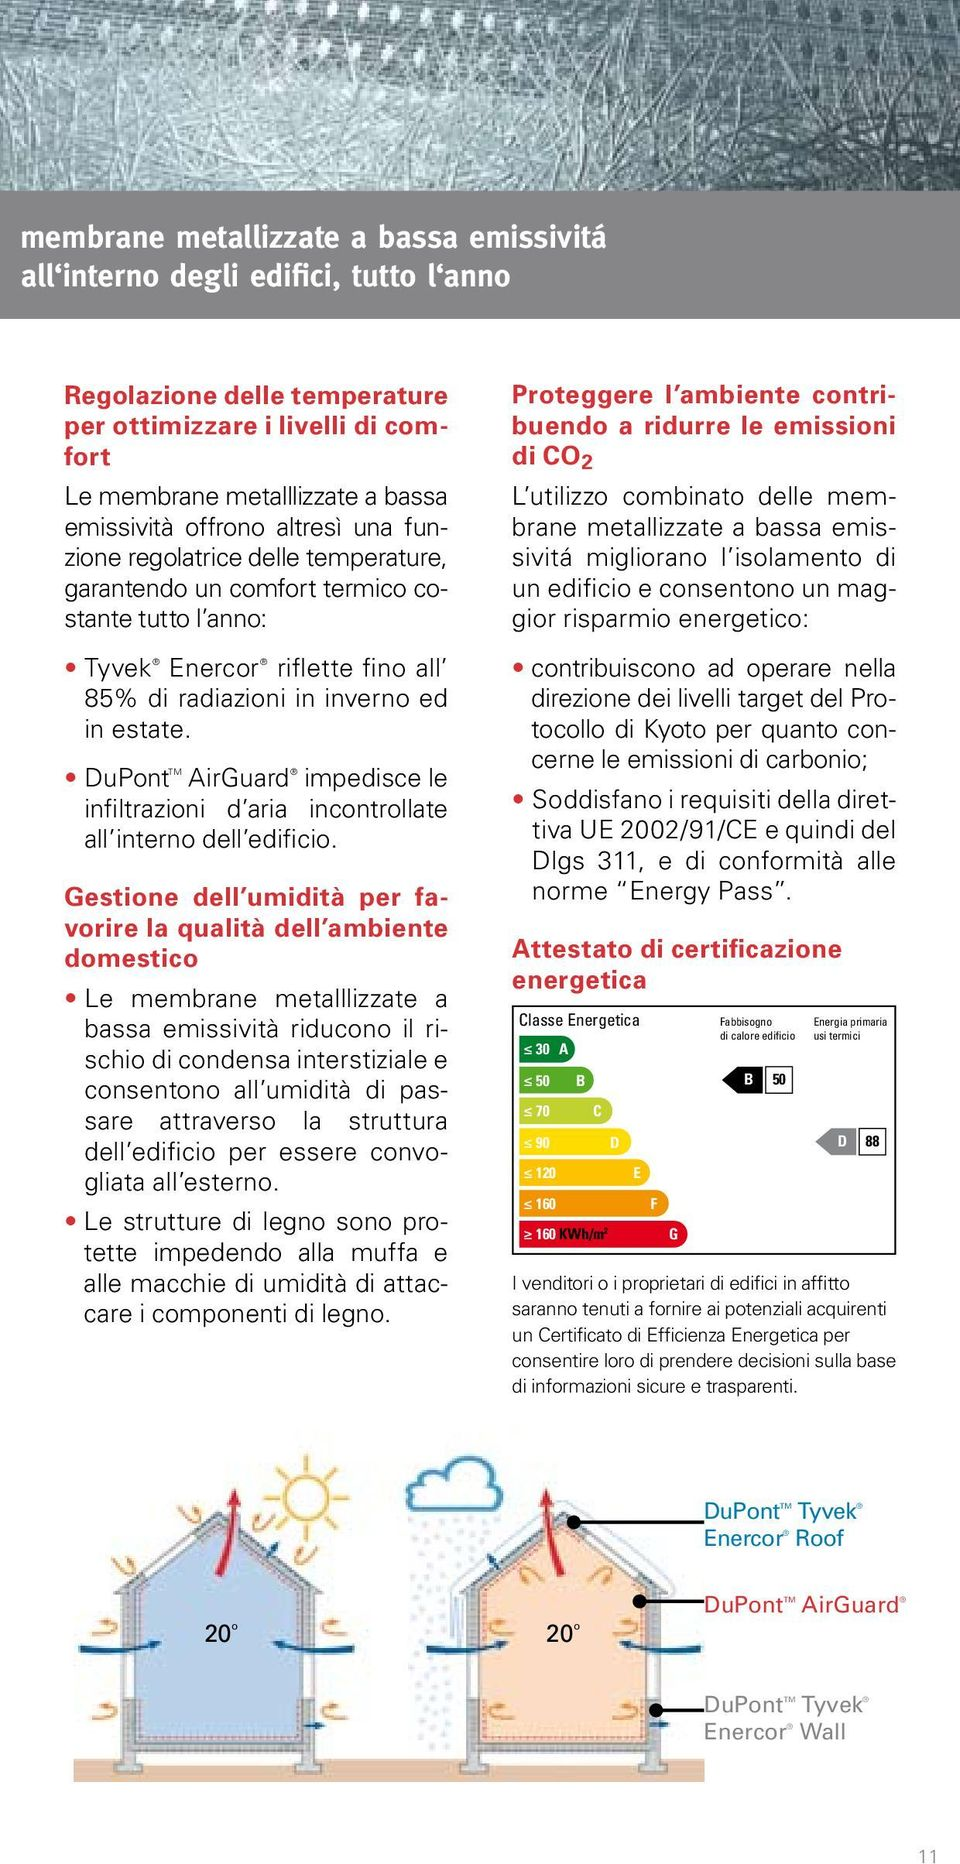 DuPont TM AirGuard impedisce le infiltrazioni d aria incontrollate all interno dell edificio.